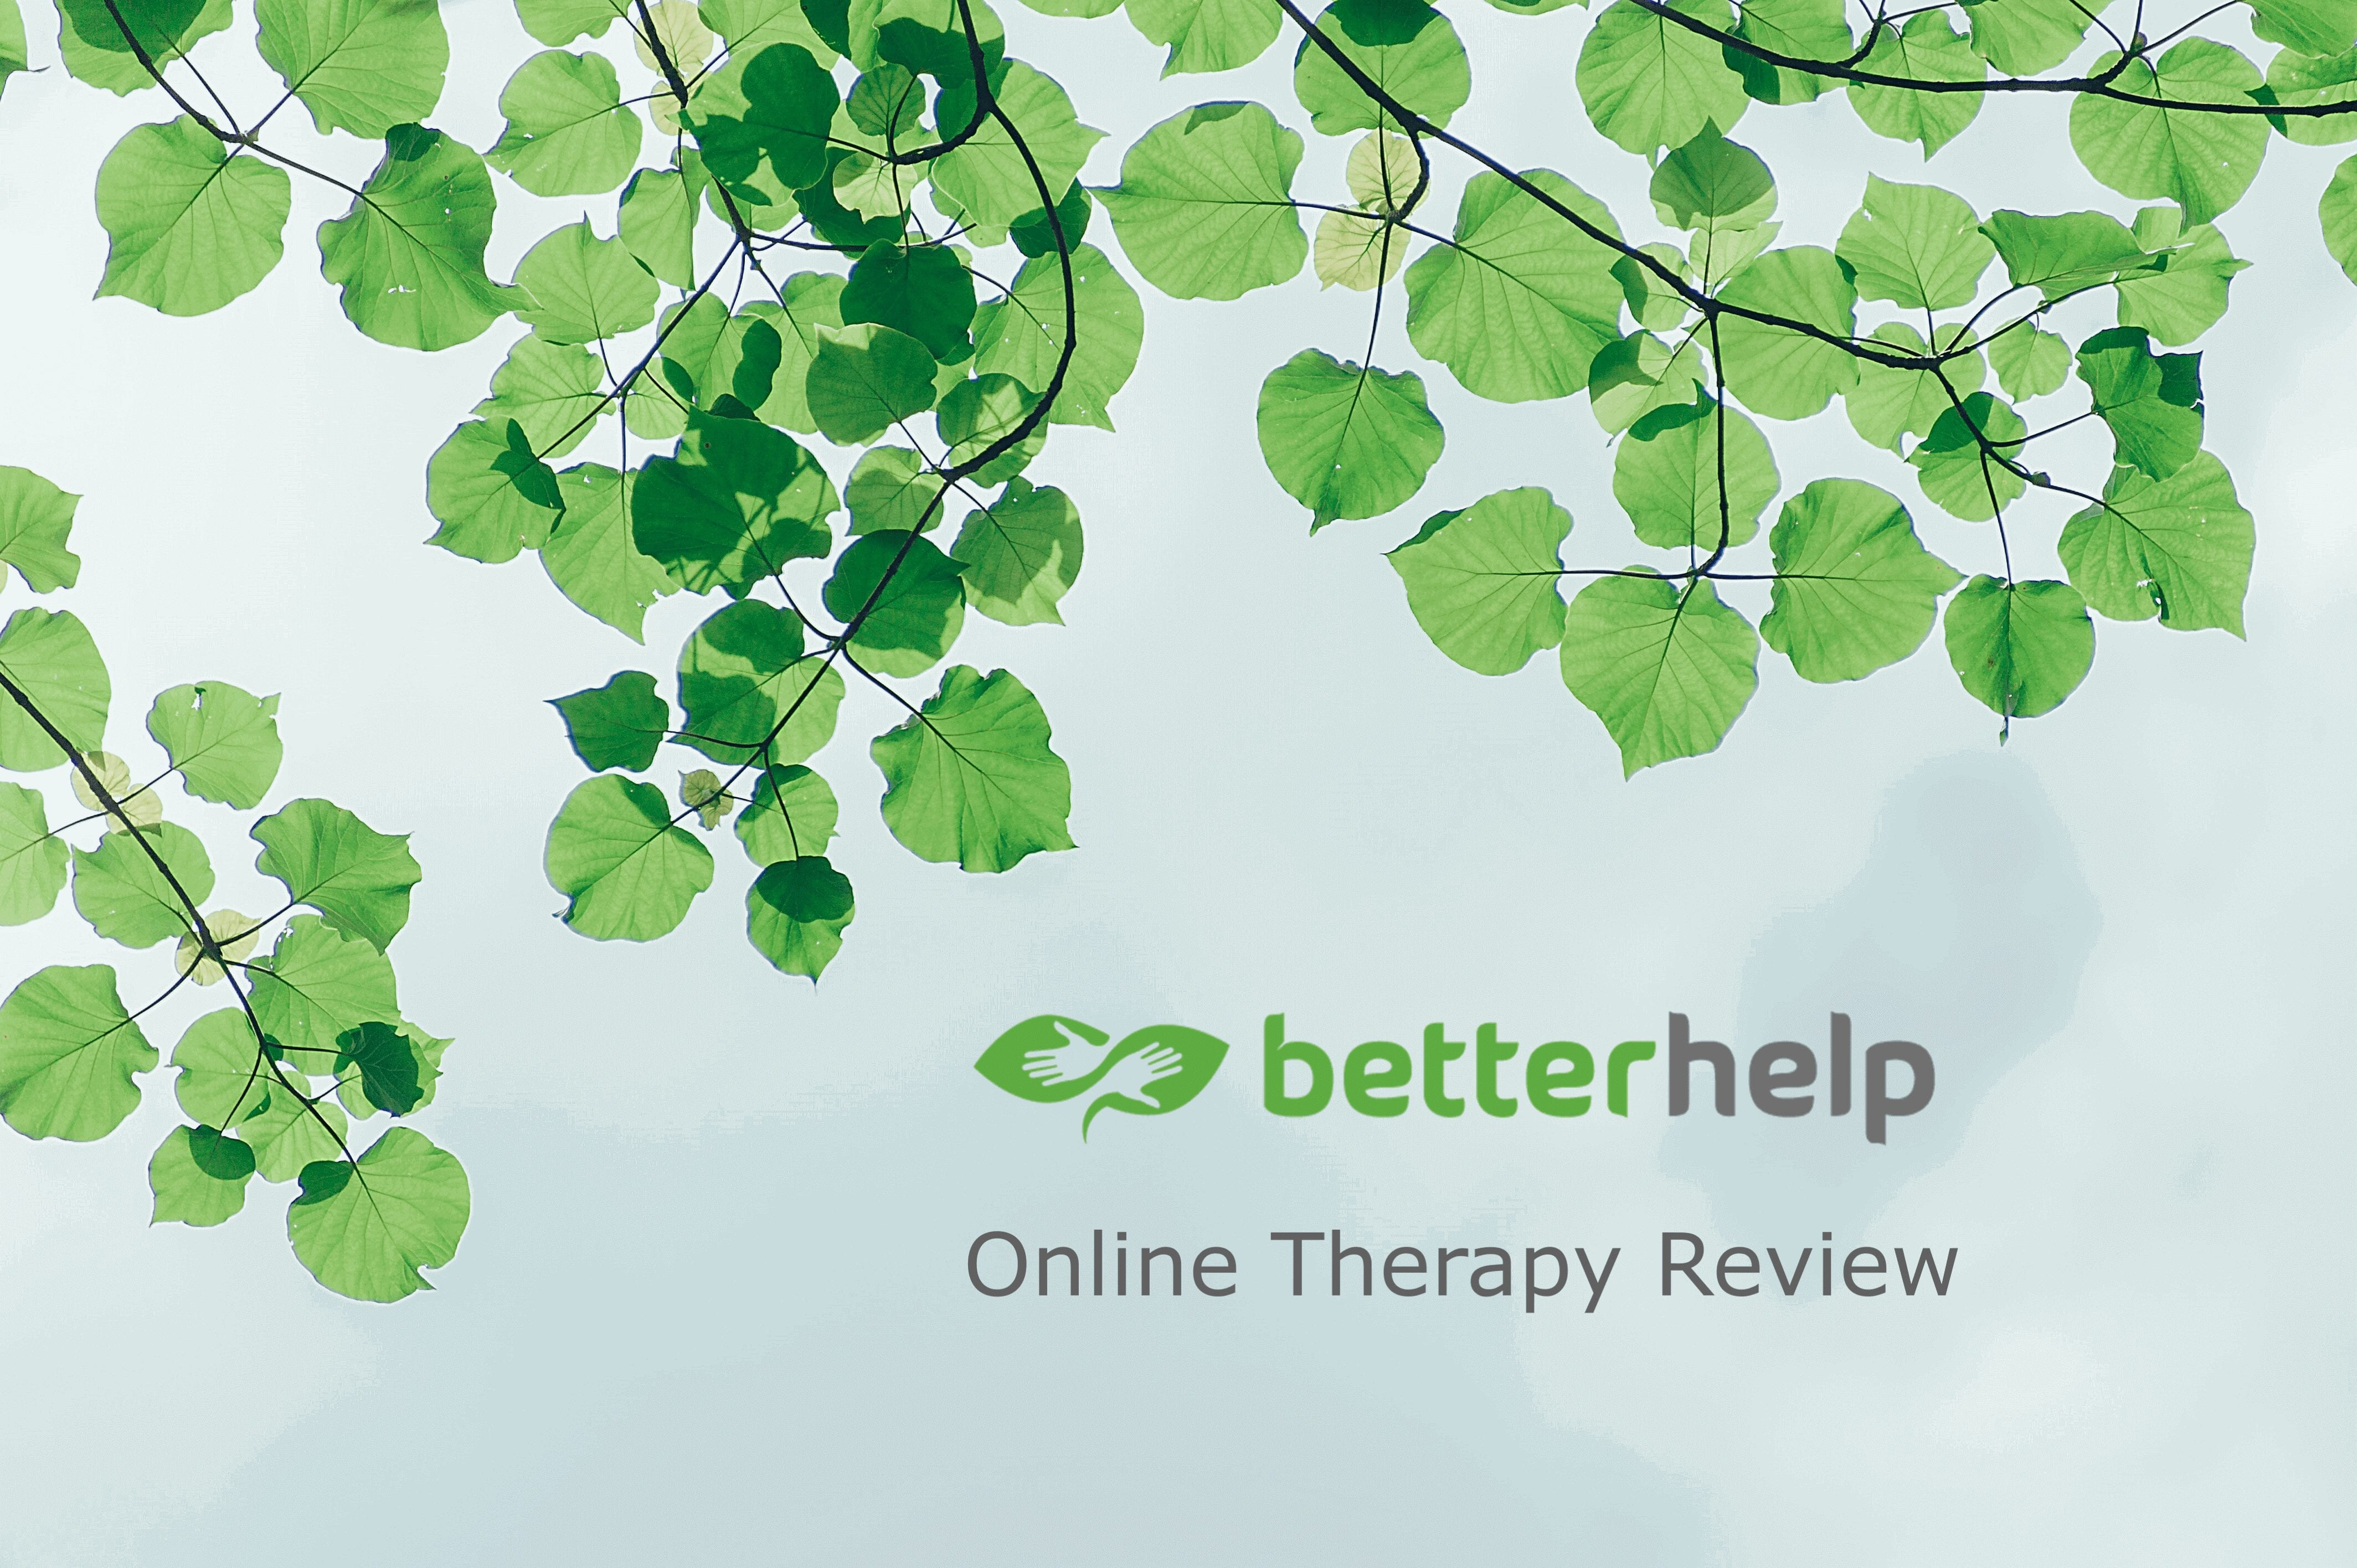 Betterhelp - online therapy review